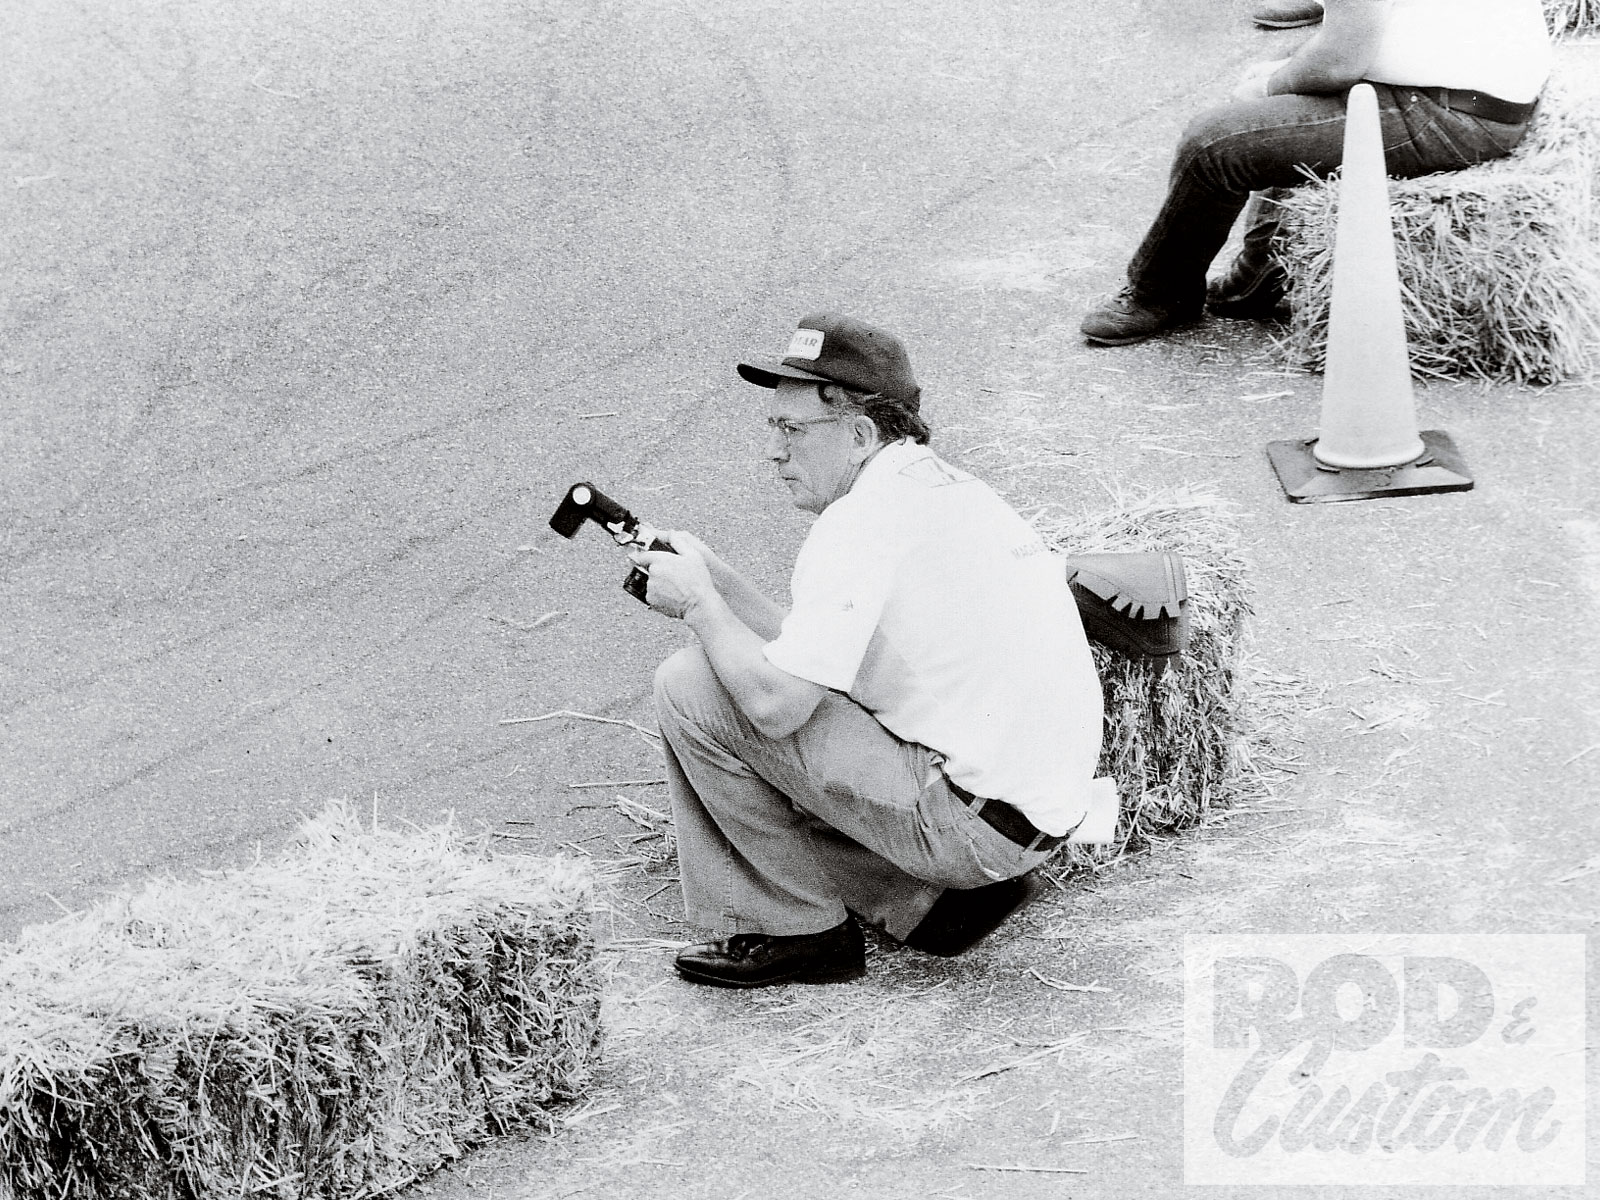 Tom covered every form of racing, from Bonneville to the Indianapolis 500, El Mirage to go-kart races in the early years as well as his other assignments for Petersen Publishing.